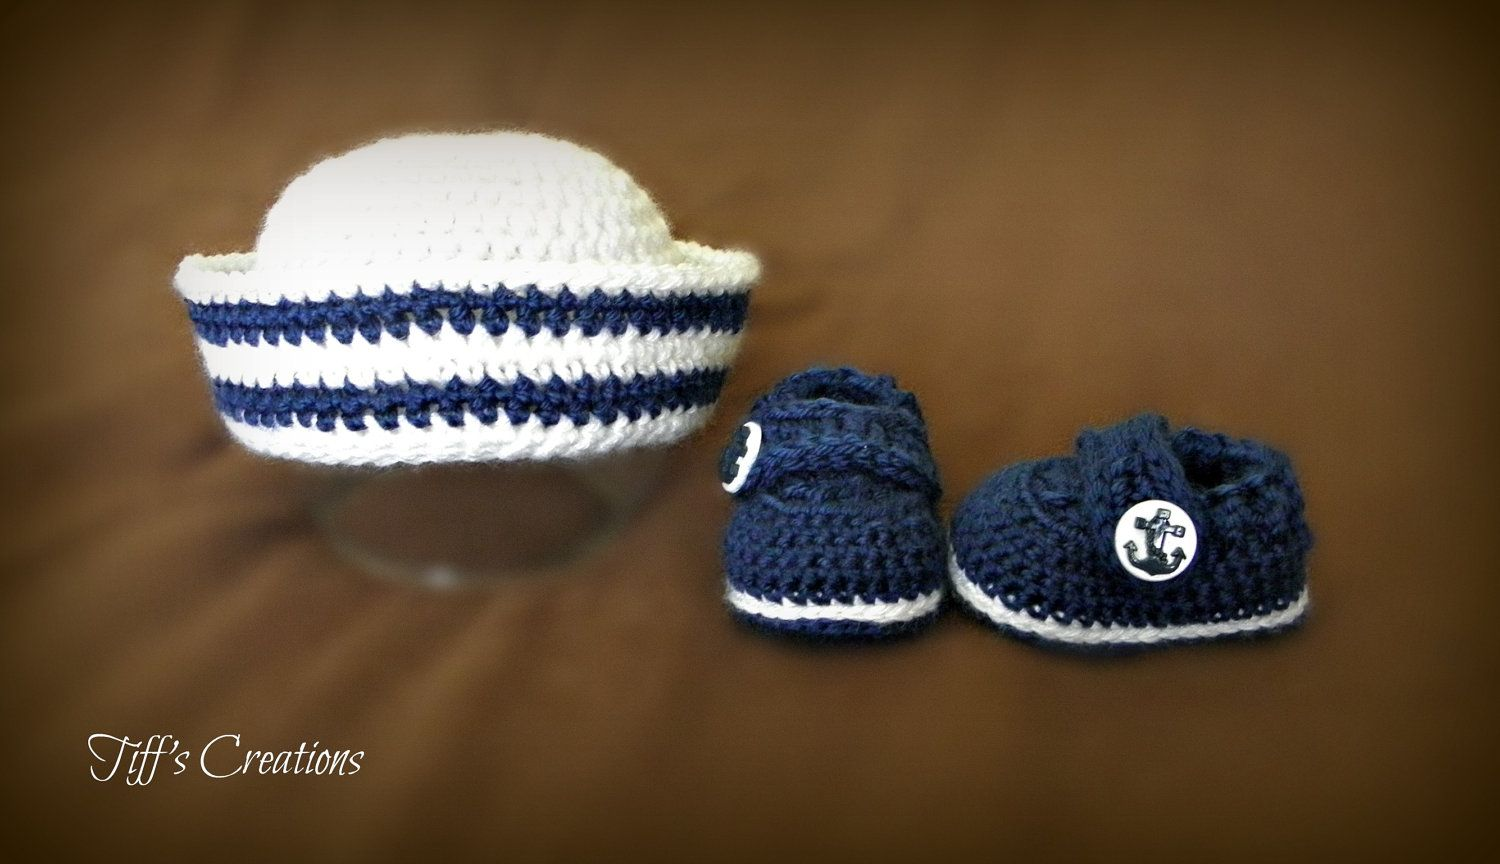 Baby sailor hat wallpaper ideas for the house pinterest adorable baby boy gift set the little sailor navy sailor hat and bankloansurffo Choice Image